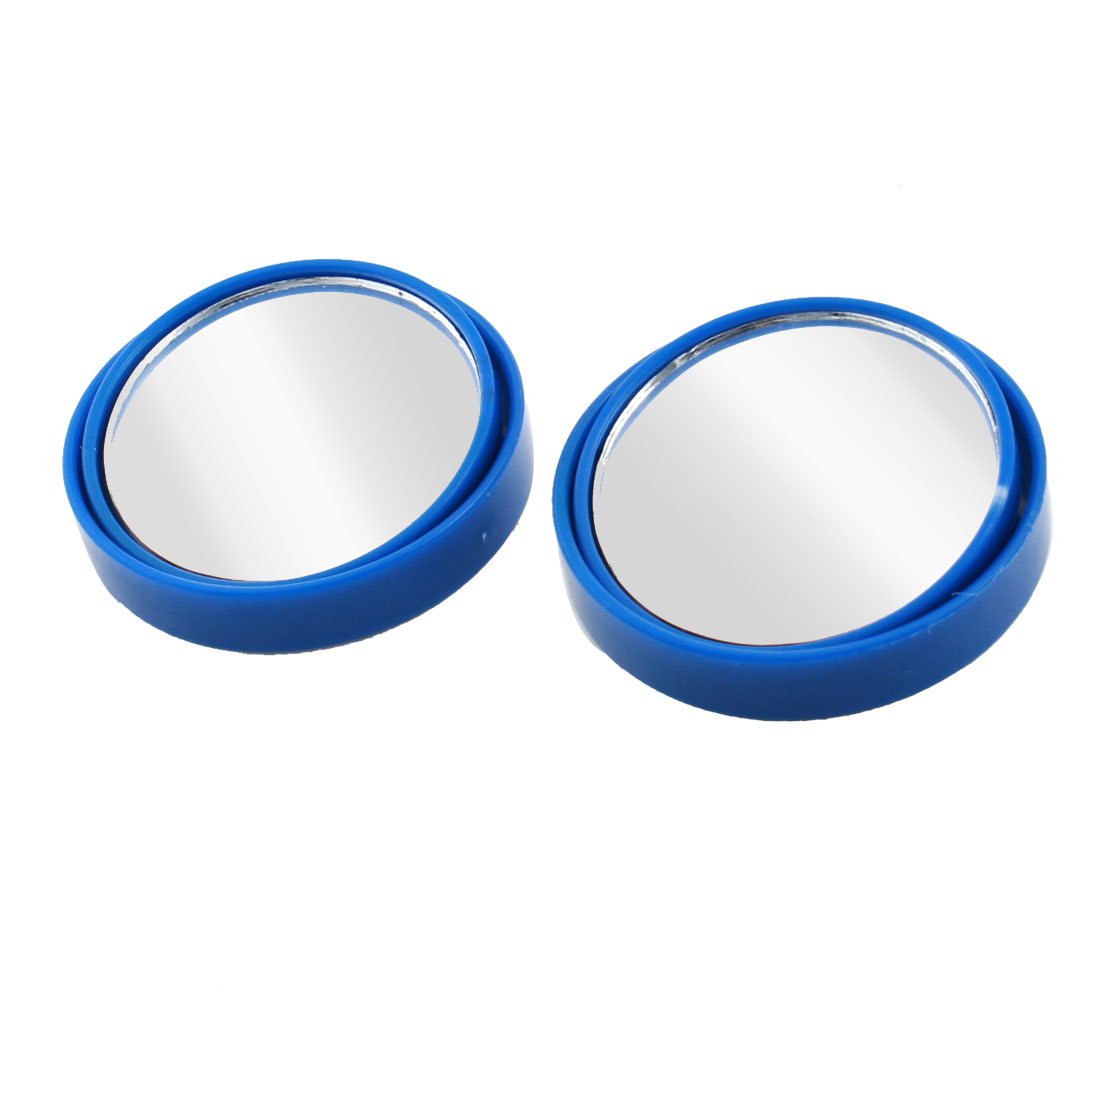 "Car Blue Wide Angle Round Convex Rearview Blind Spot Mirror 2"" 2pcs"